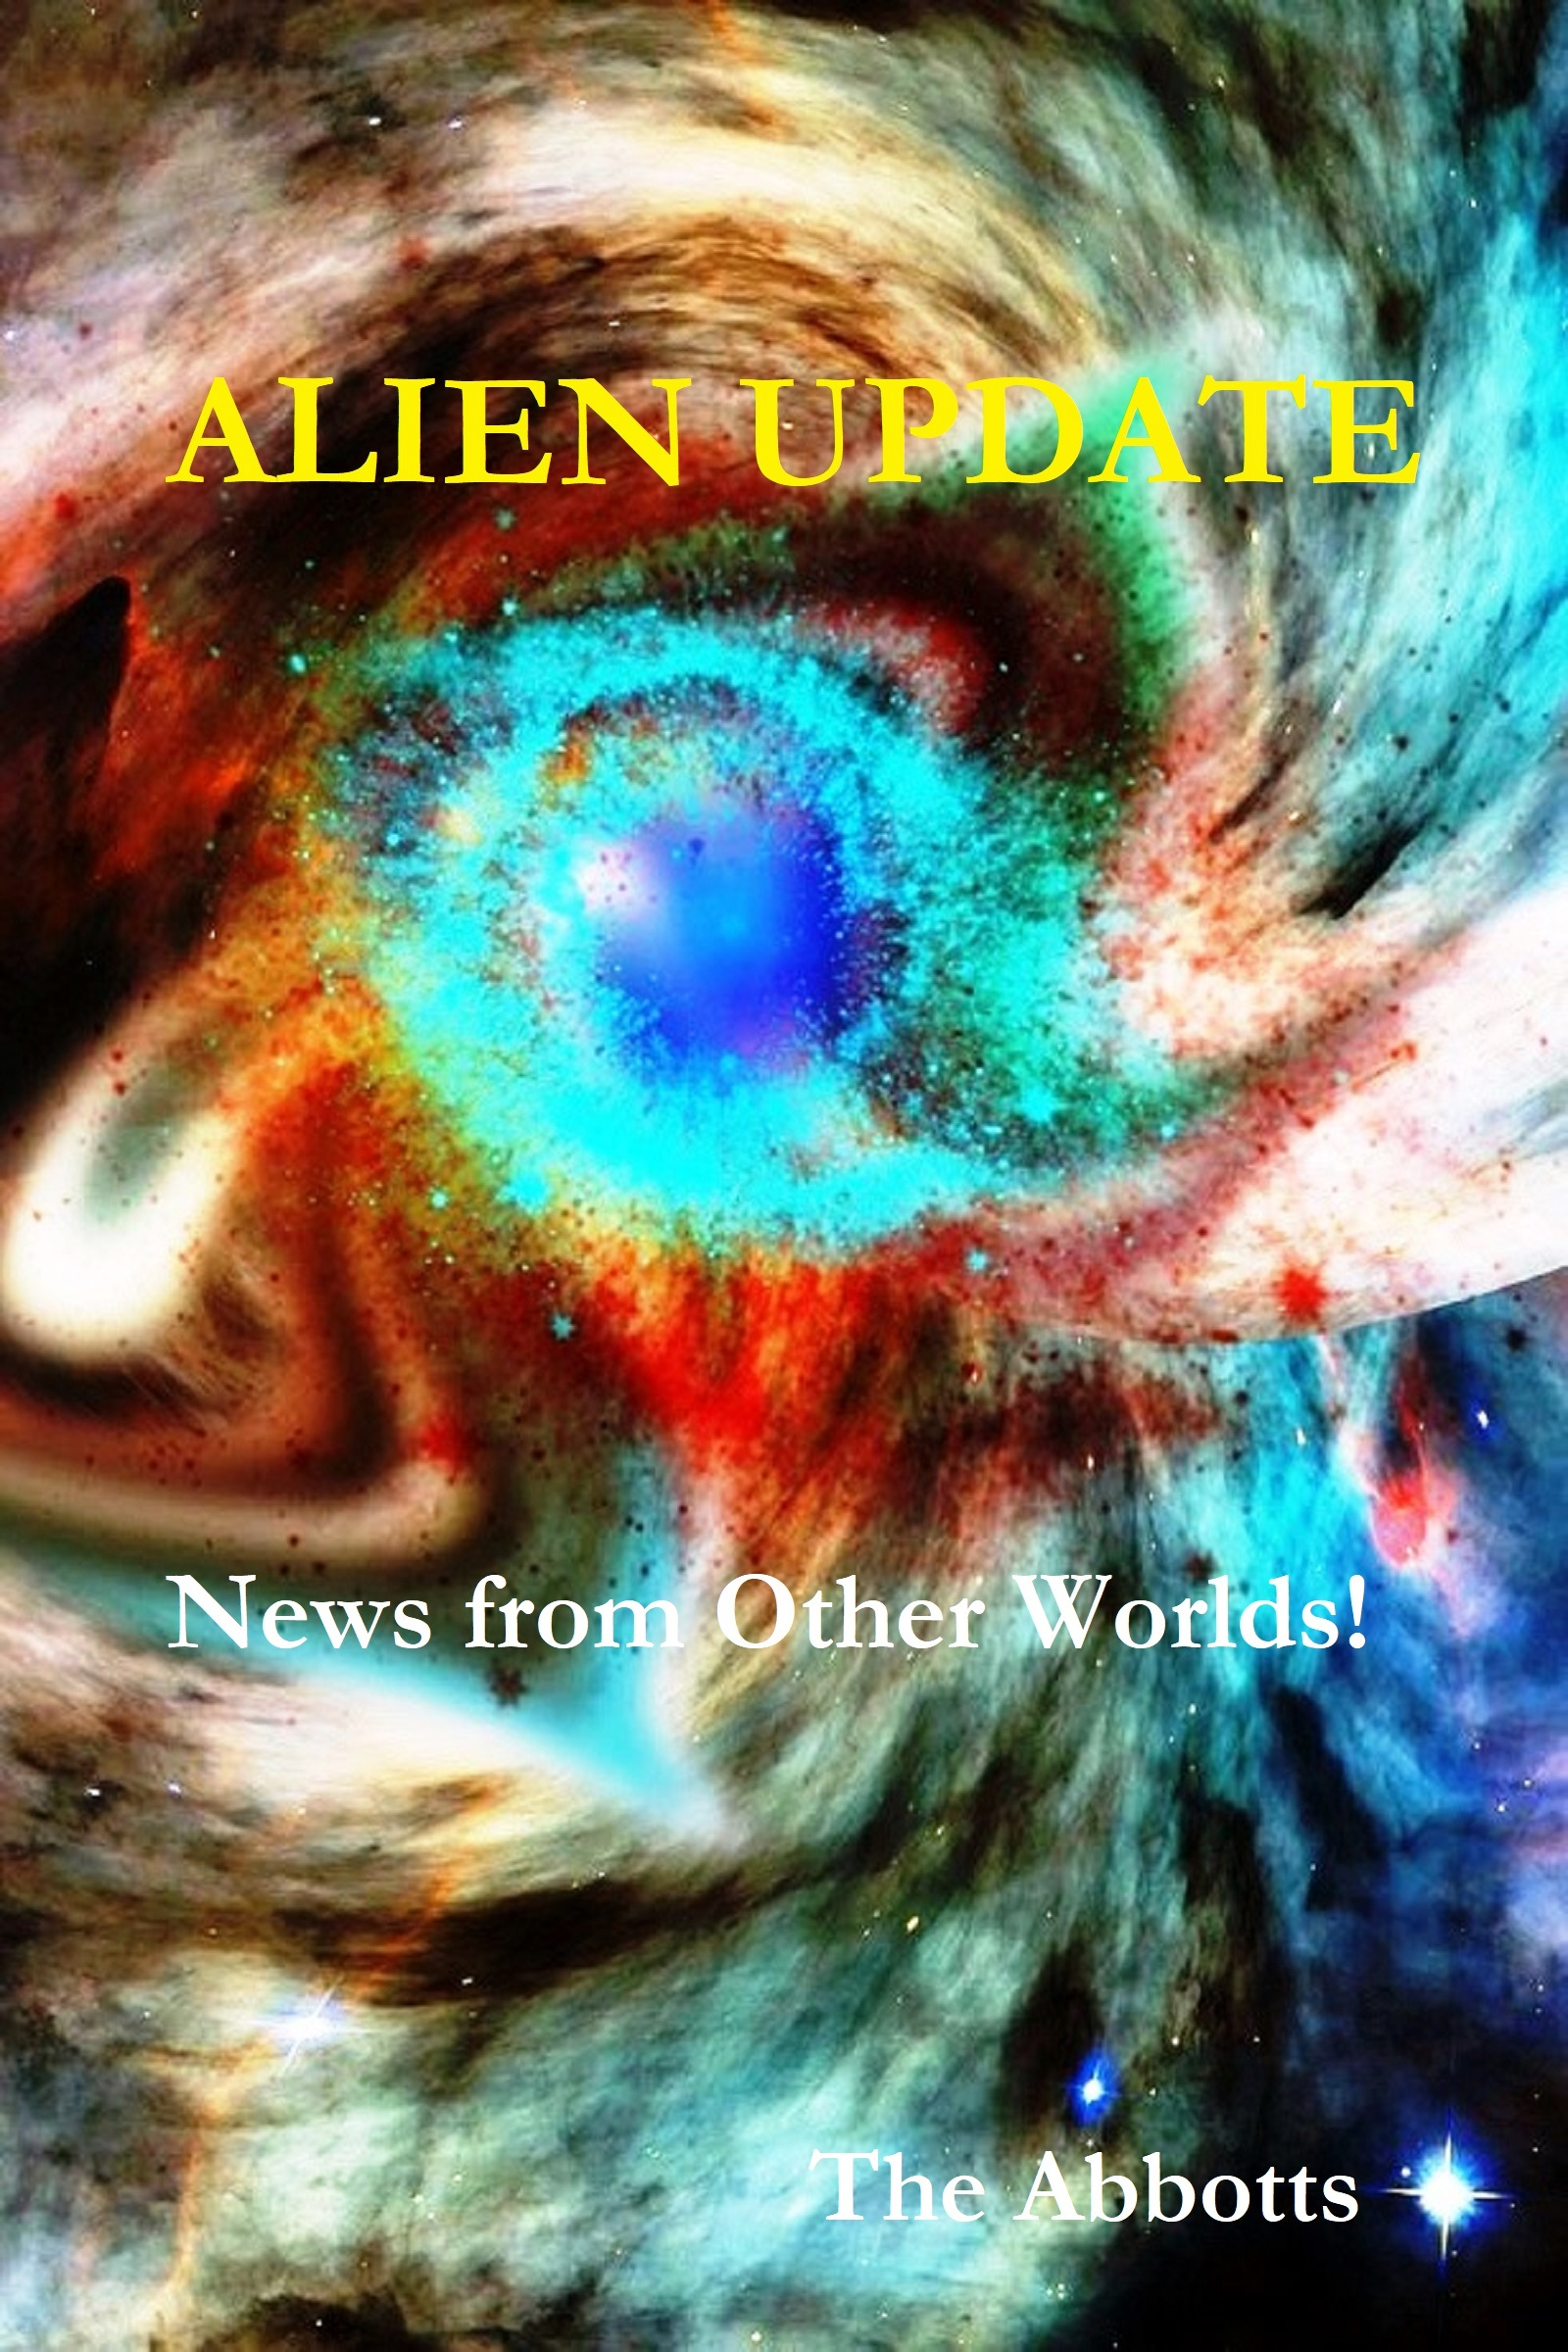 Alien Update - News from Other Worlds!, an Ebook by The Abbotts